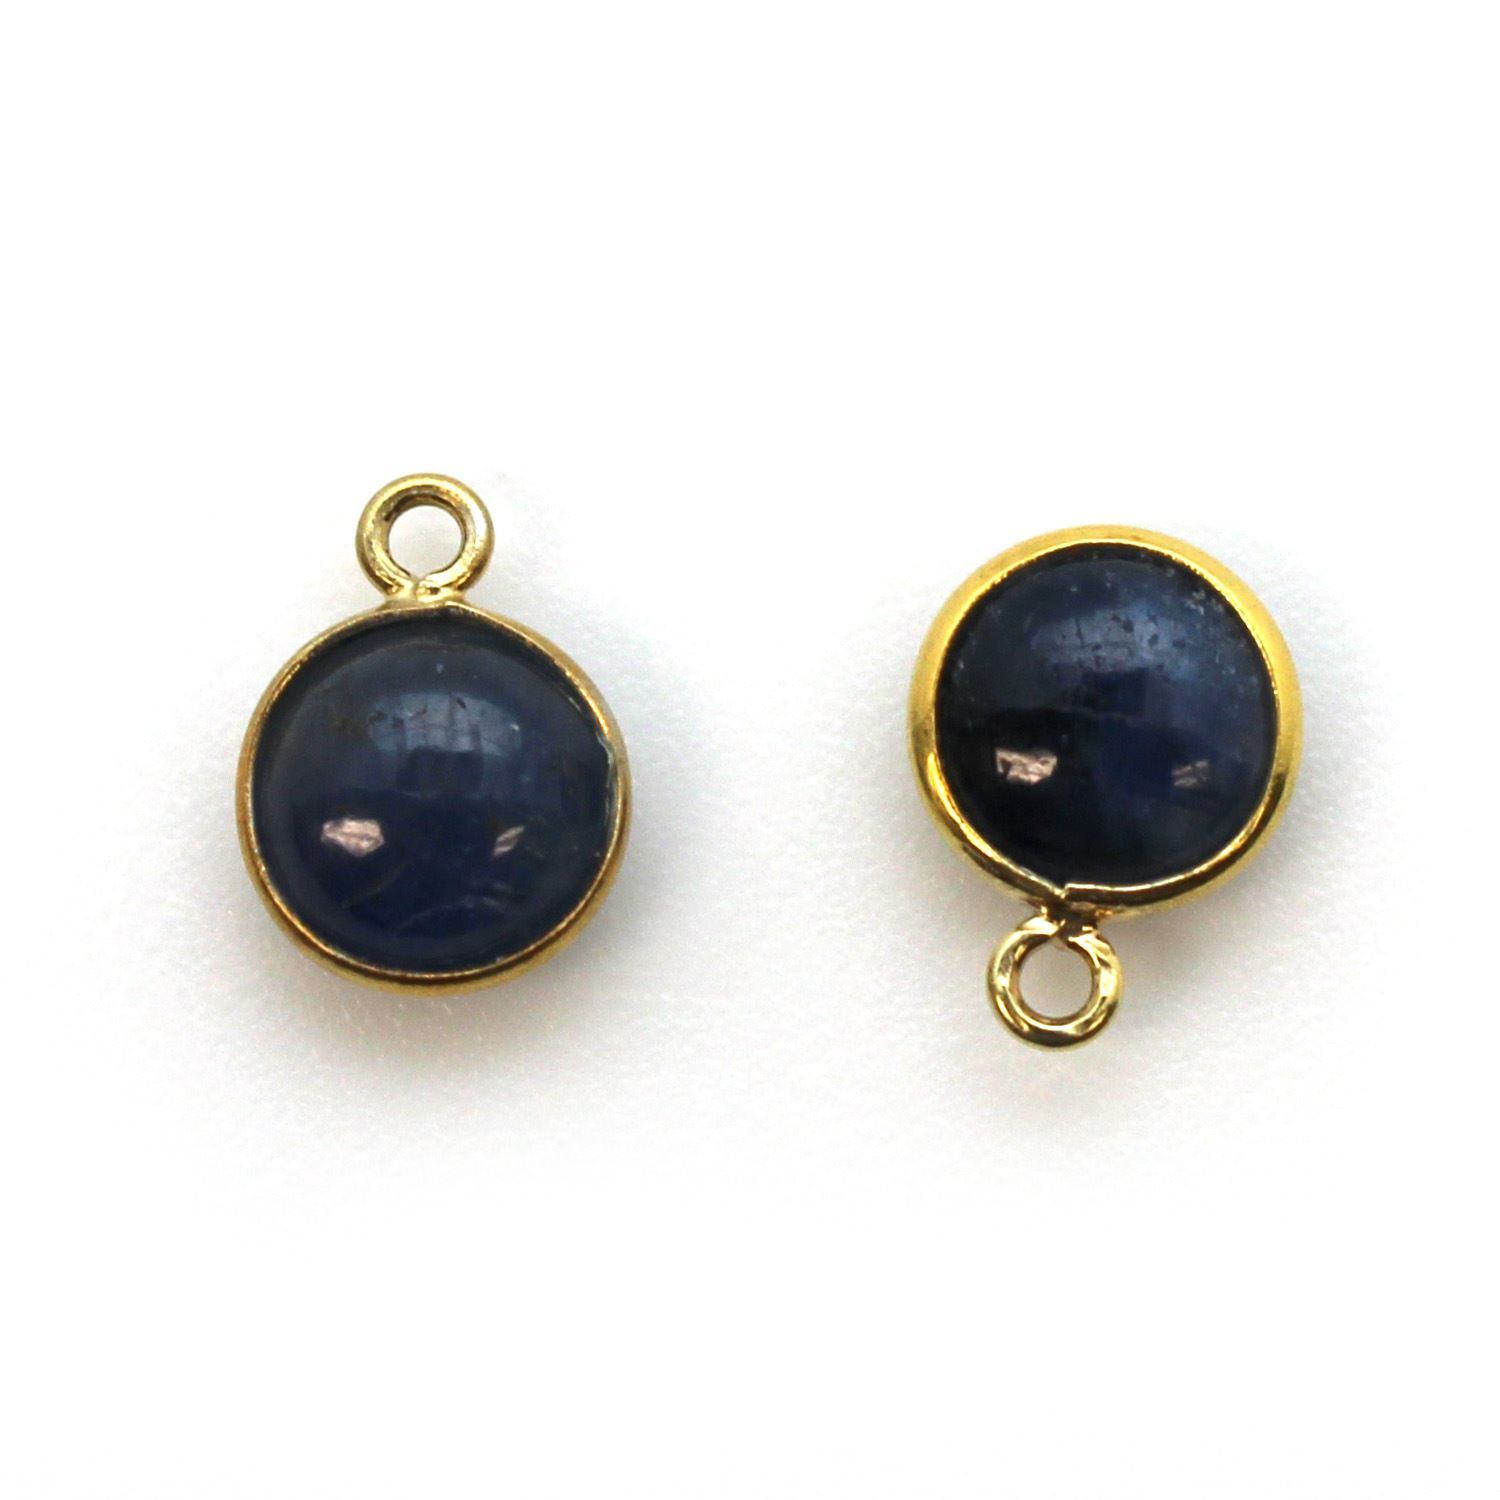 Bezel Charm Pendant - Gold Plated Sterling Silver Charm - Natural Blue Sapphire -Tiny Round Shape